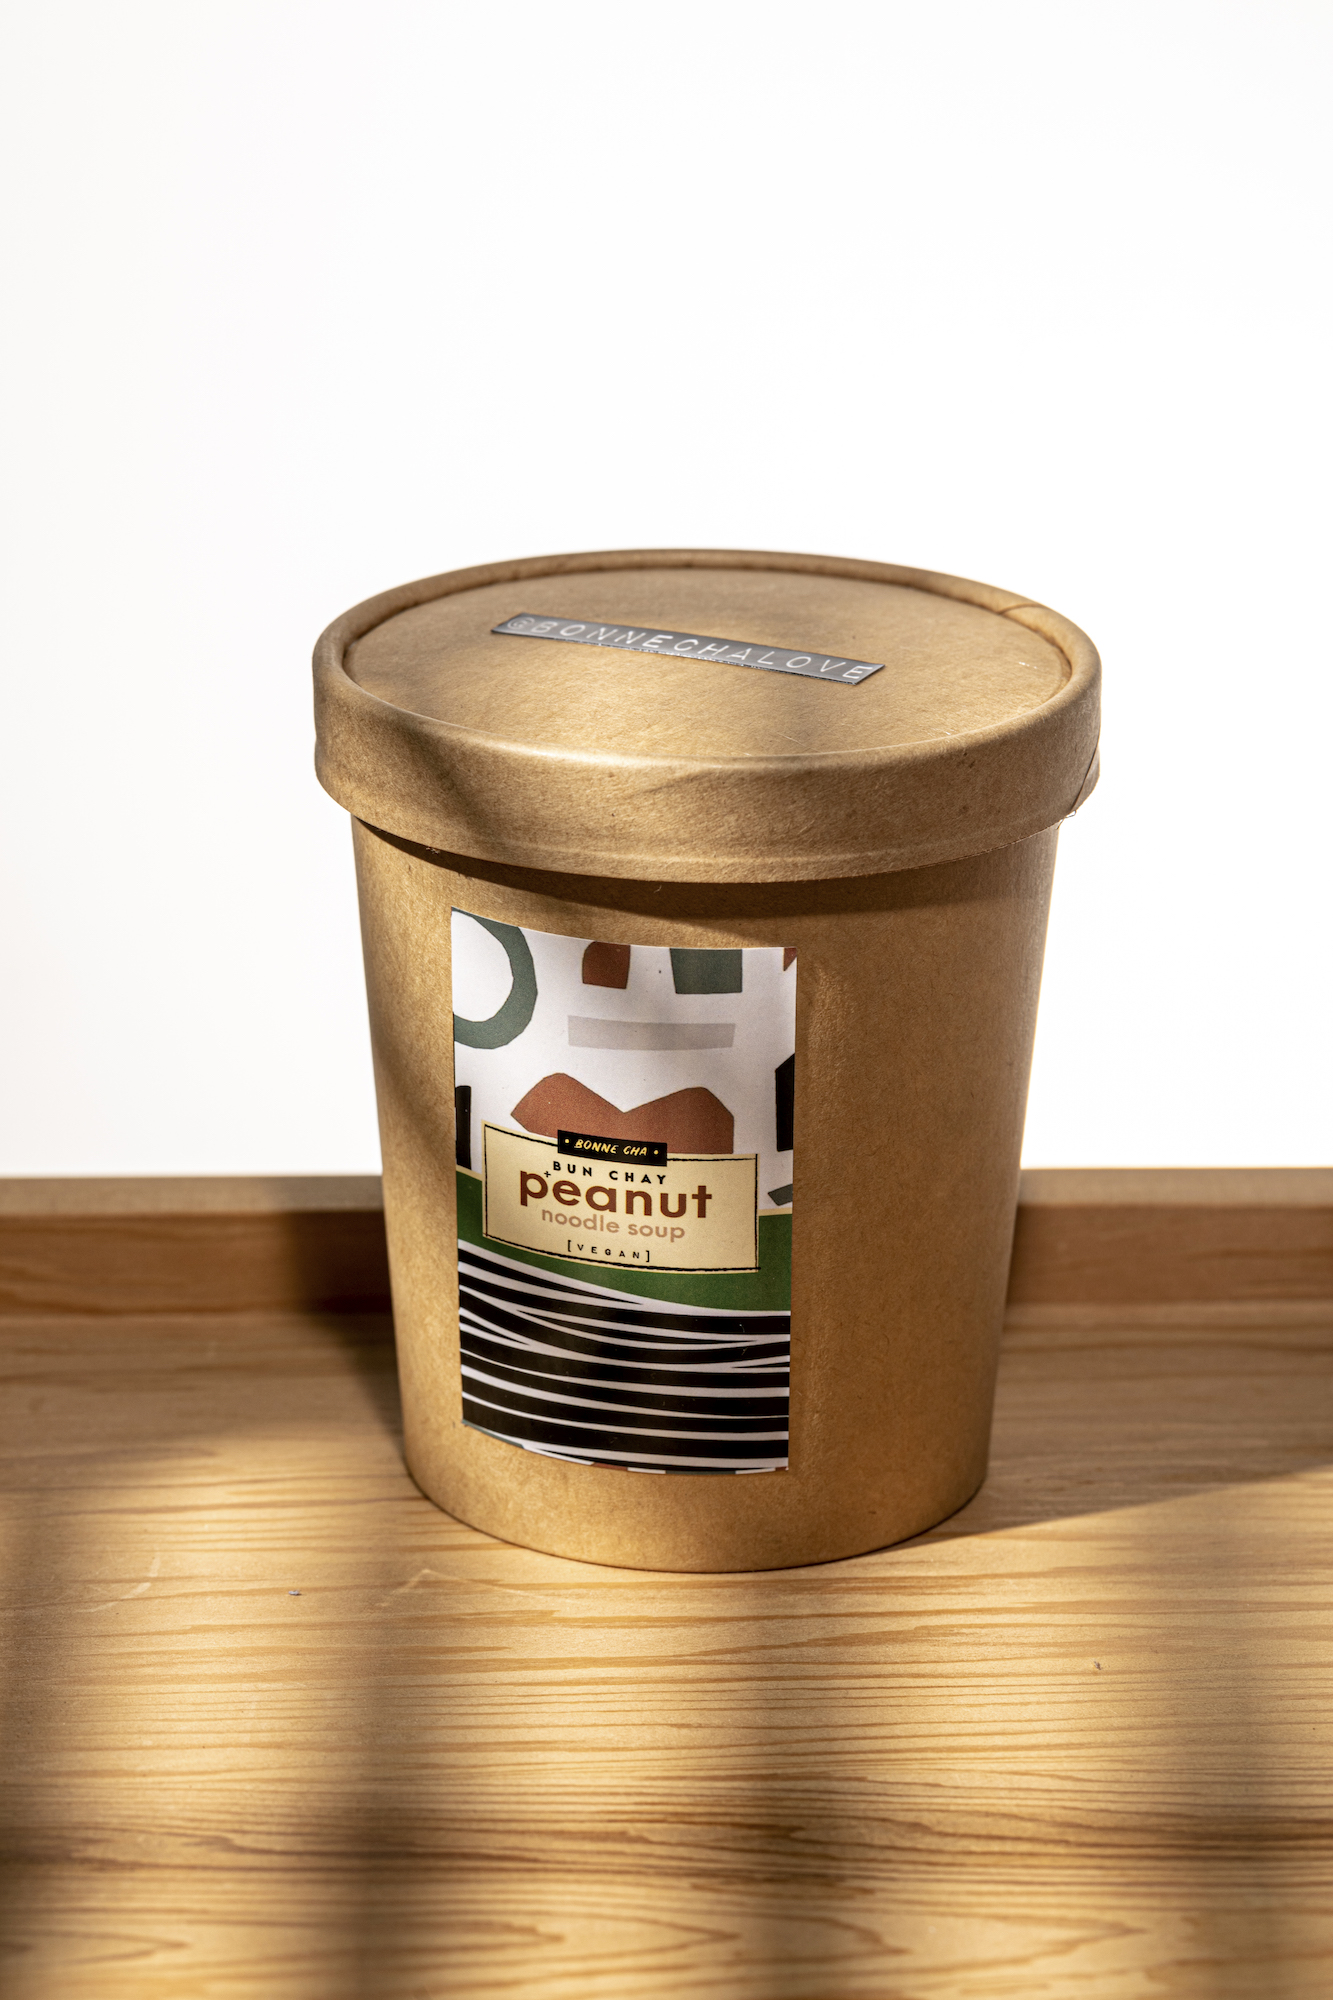 The package design for Bonne Cha's peanut sauce for its bun chay comes in a kraft cup